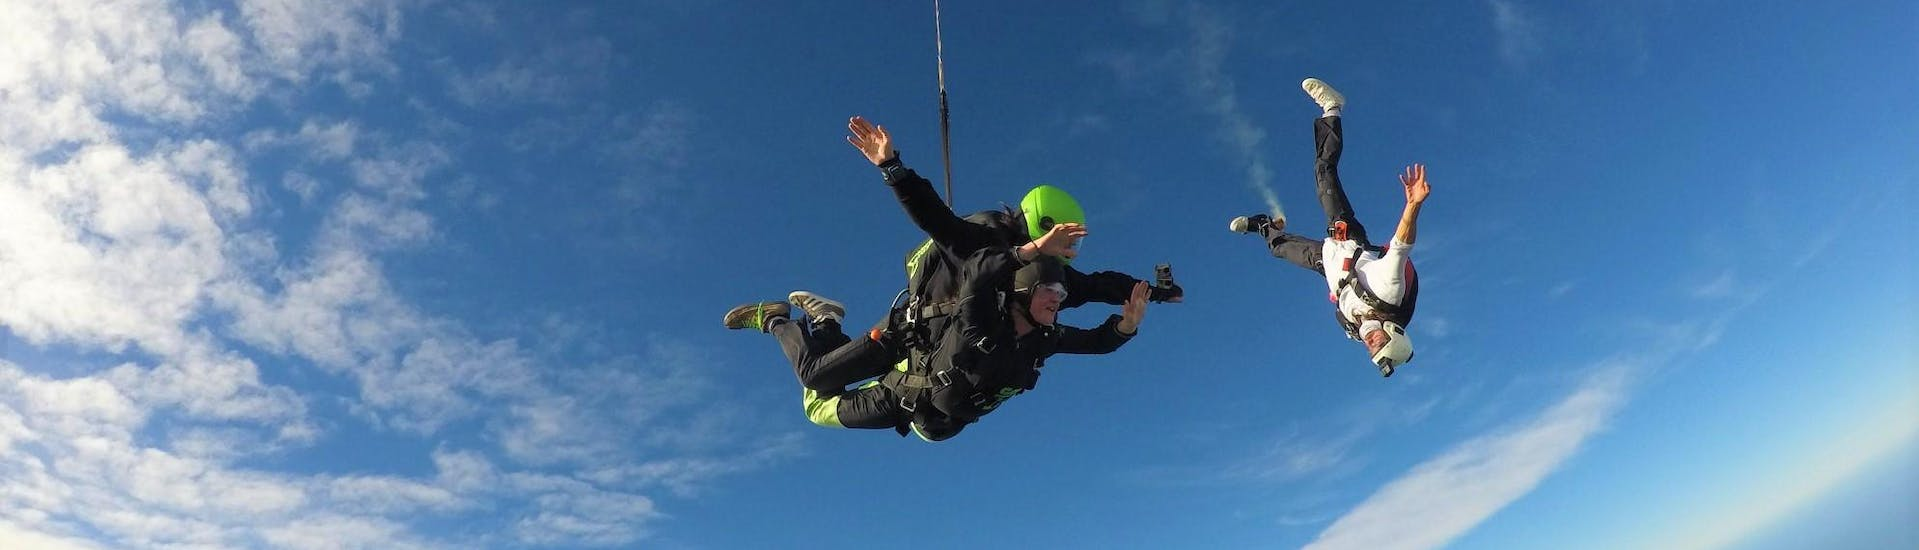 Tandem Skydive near Christchurch from 9,000ft